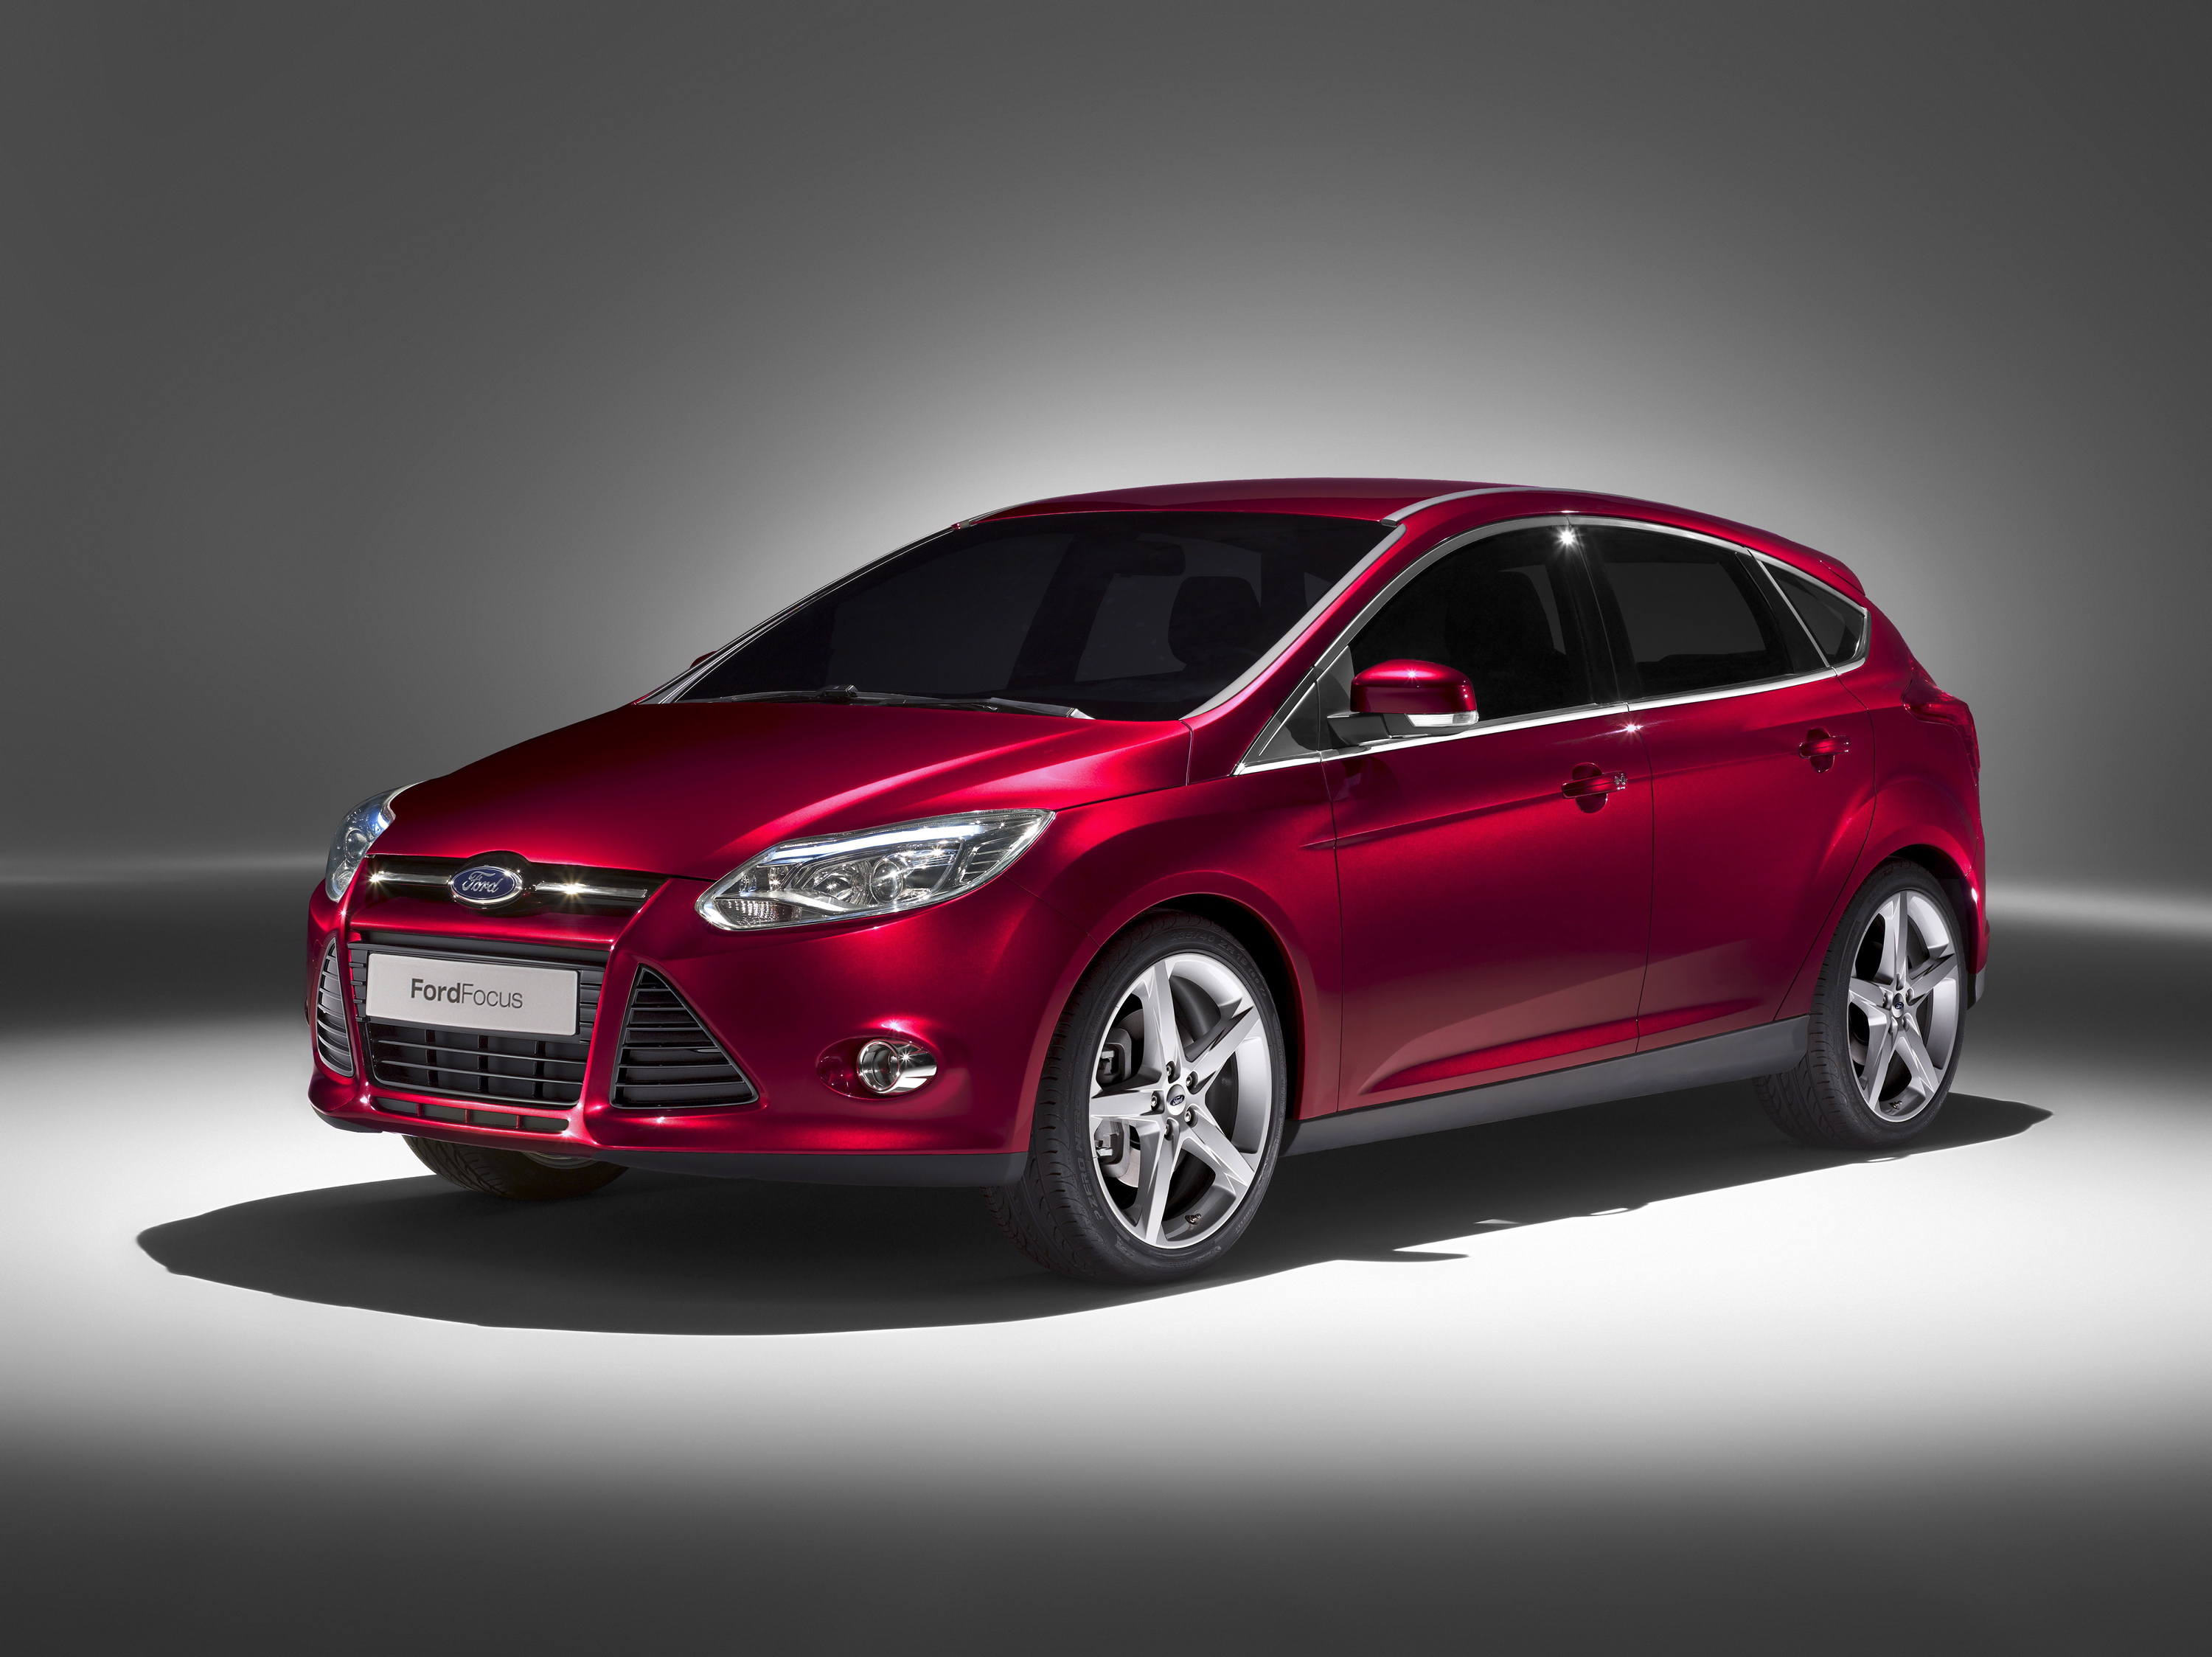 The next-generation Ford Focus hatchback, revealed at the 2010 North American International Auto Show. (01/11/2010)